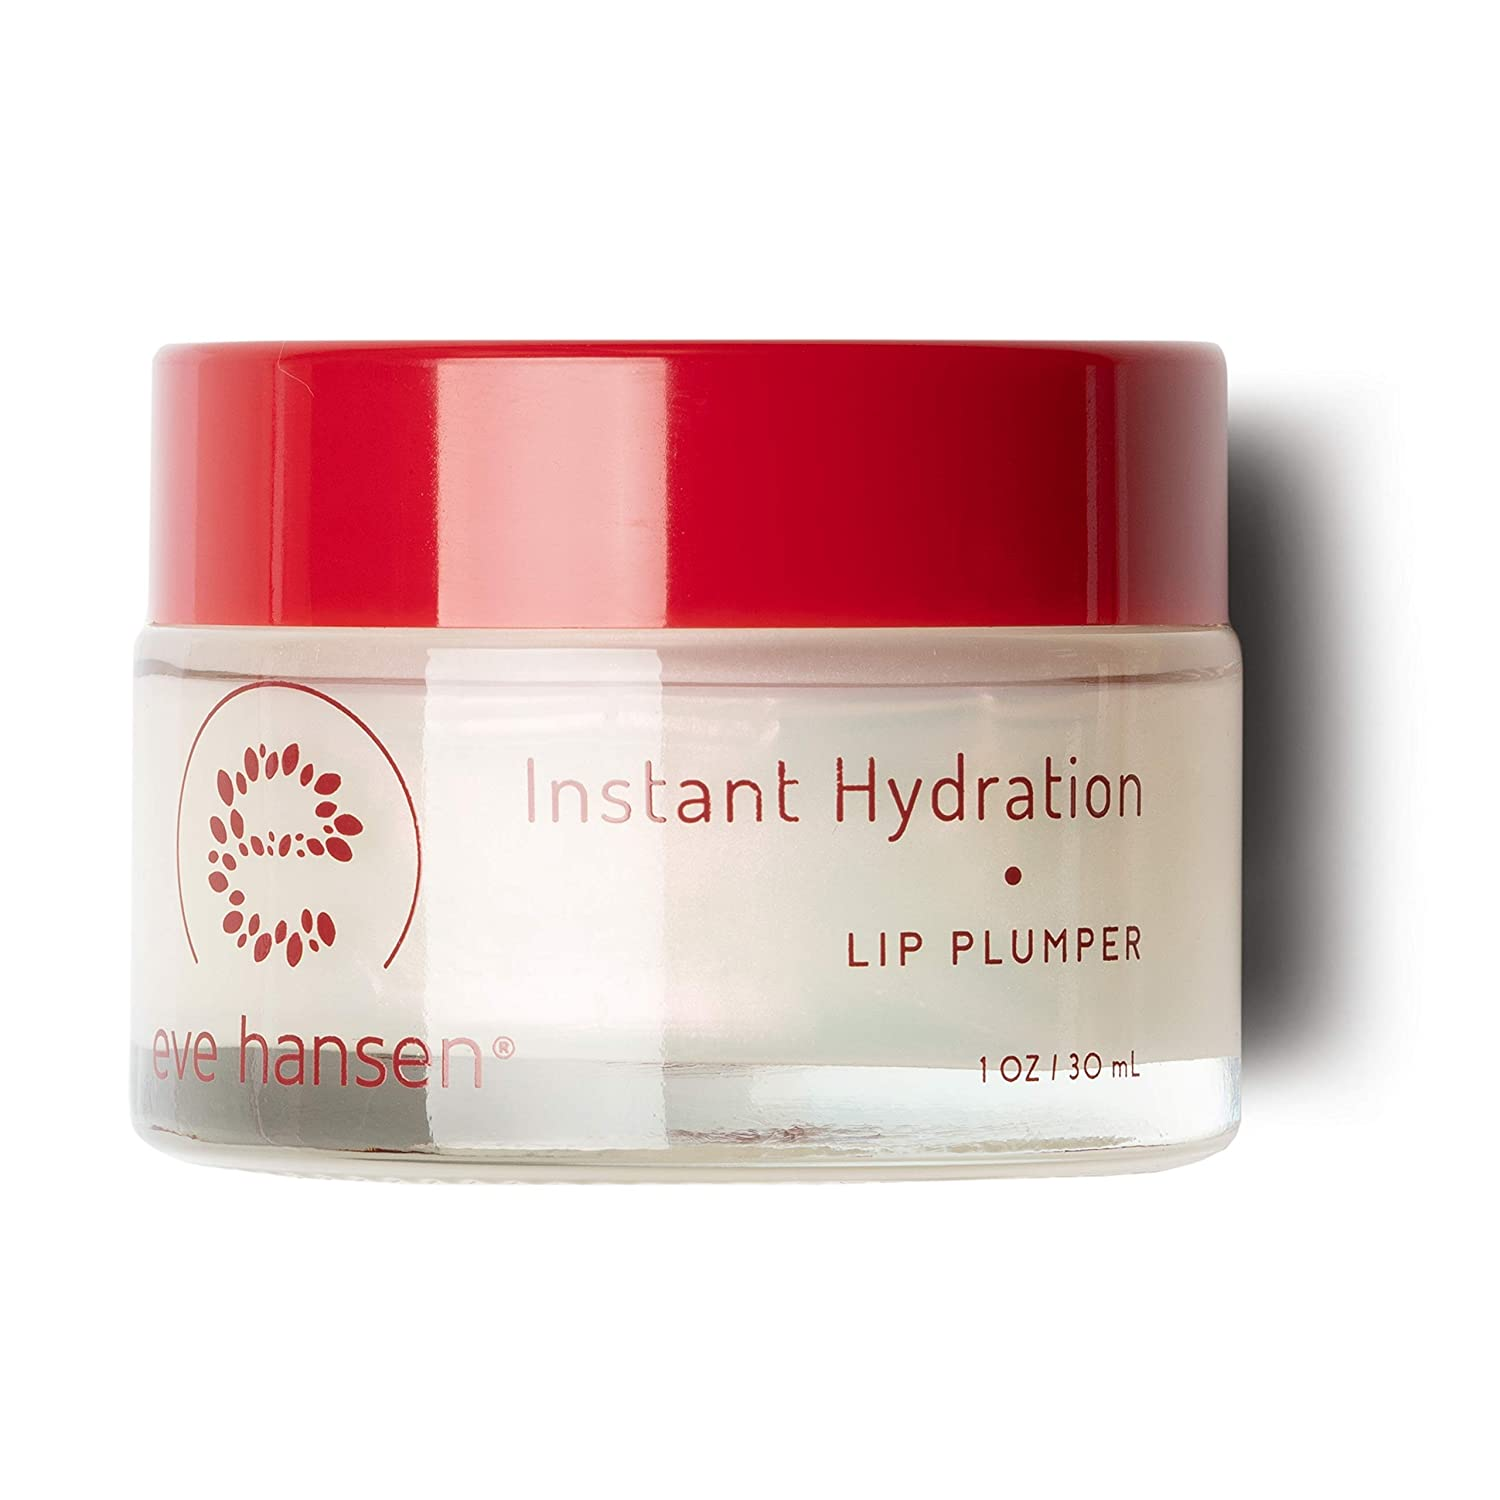 Eve Hansen Lip Plumper Dry Lips Treatment | Lip Moisturizer with Safflower Oil and Castor Oil | Lip Enhancer and Plumping Lip Gloss to Hydrate, Condition and Enhance Lip Fullness | 1 oz